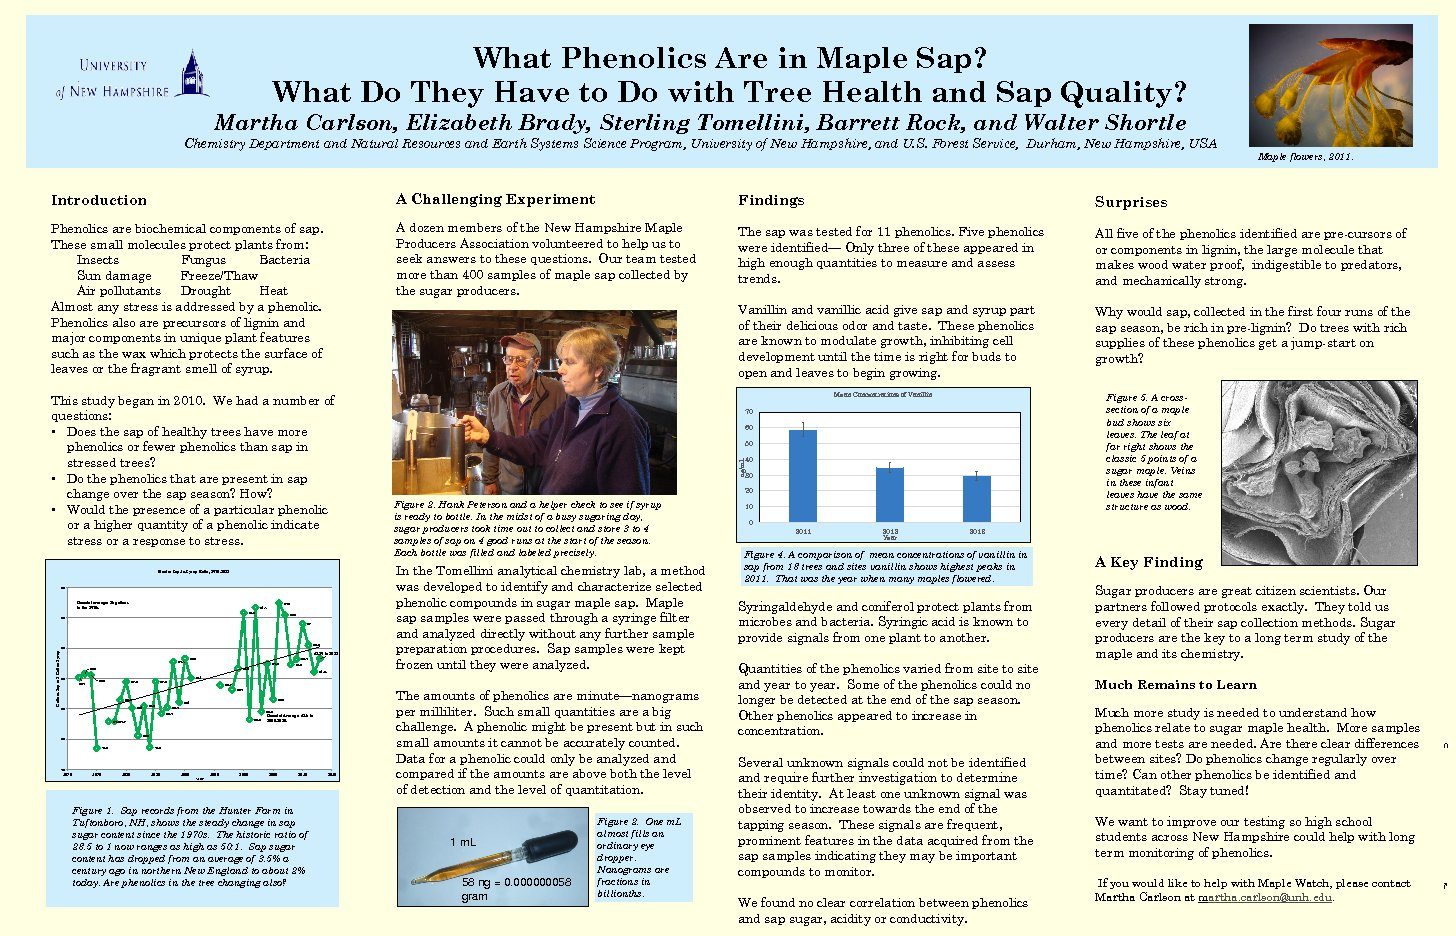 What Phenolics Are In Maple Sap? by mrg39